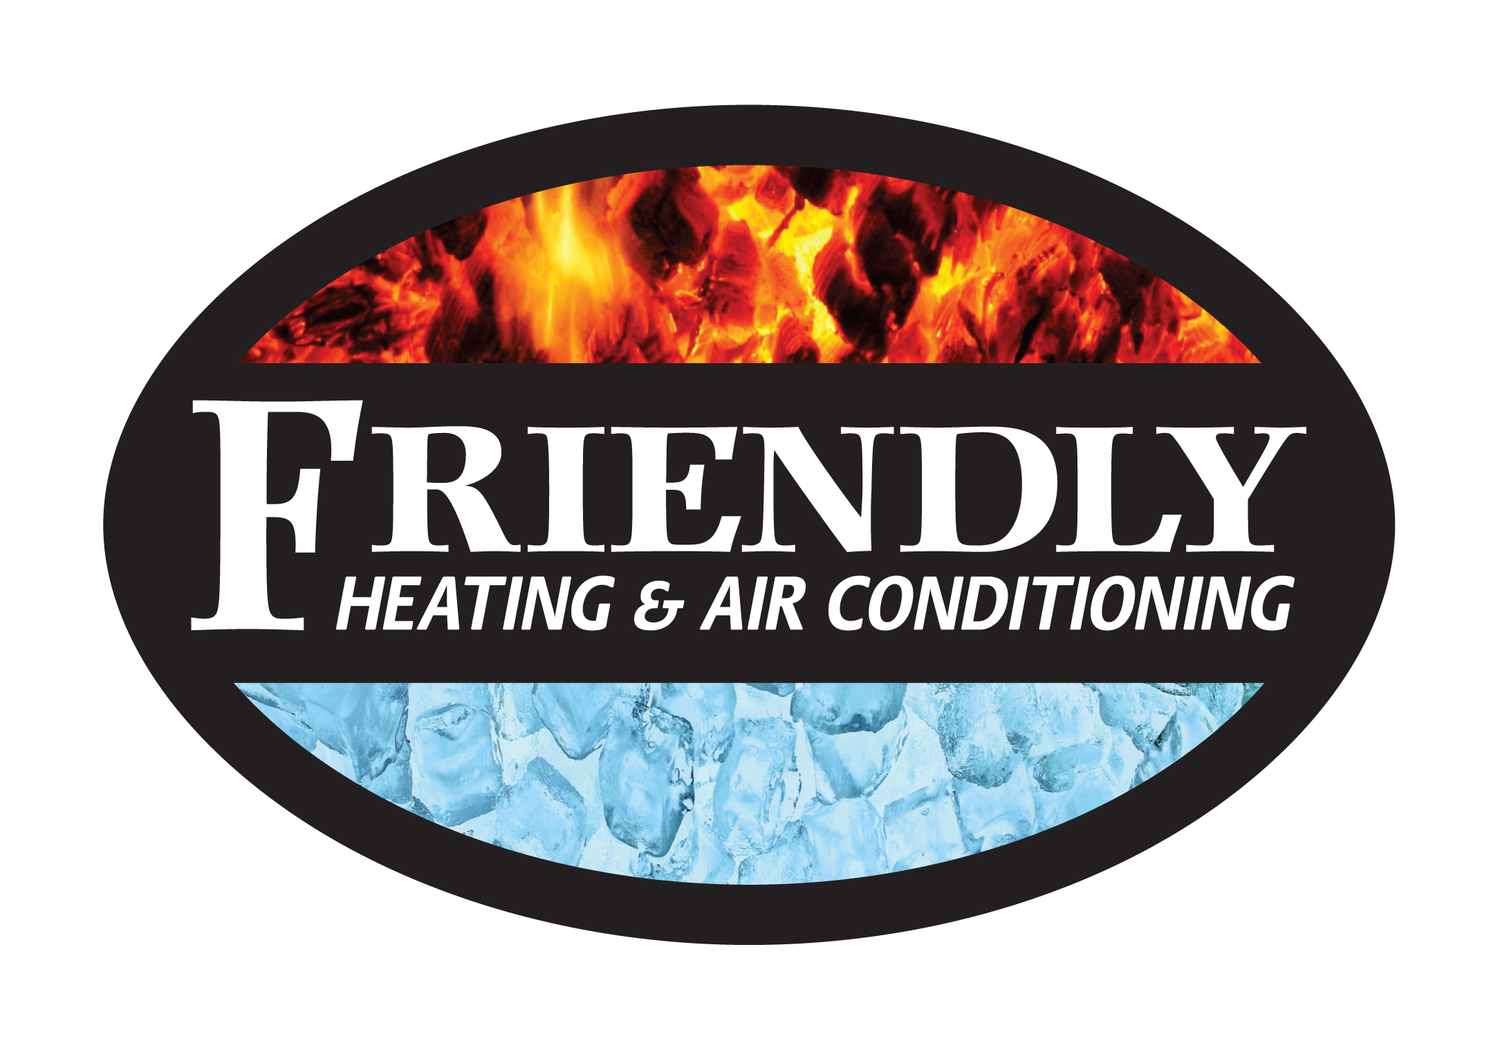 Friendly Heating & Air Conditioning, Inc